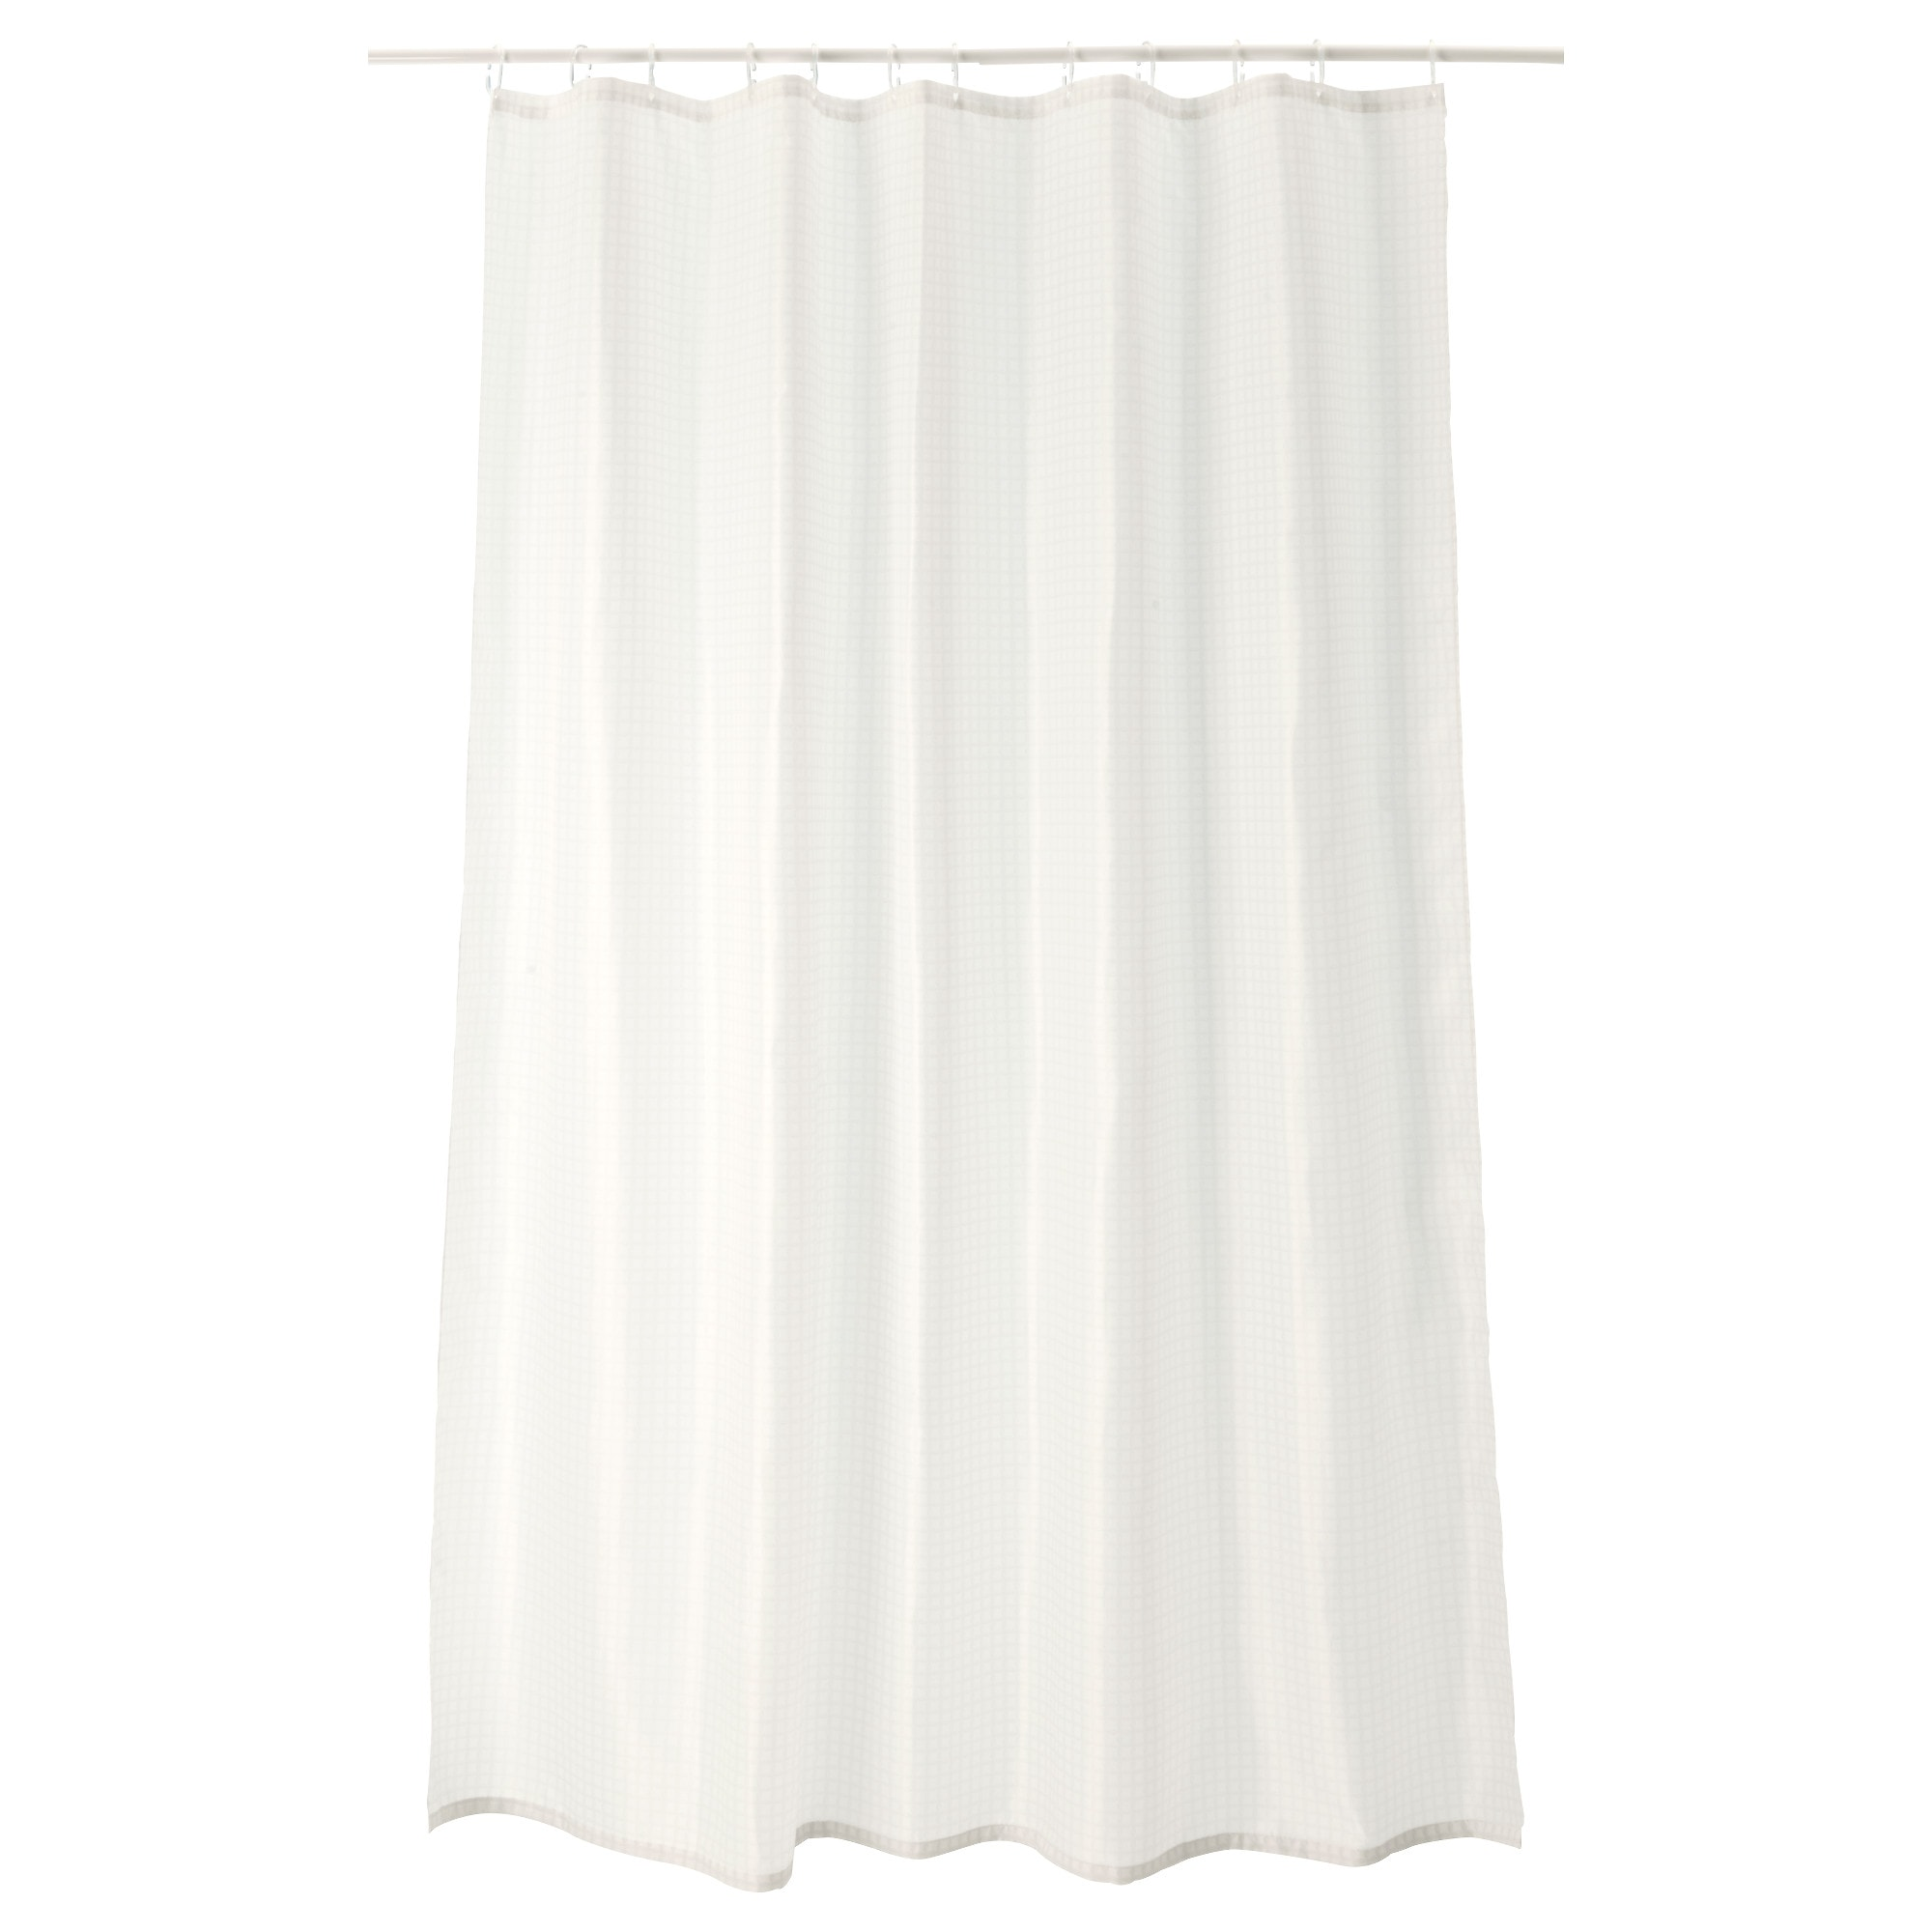 Shower Curtains & Rods - IKEA